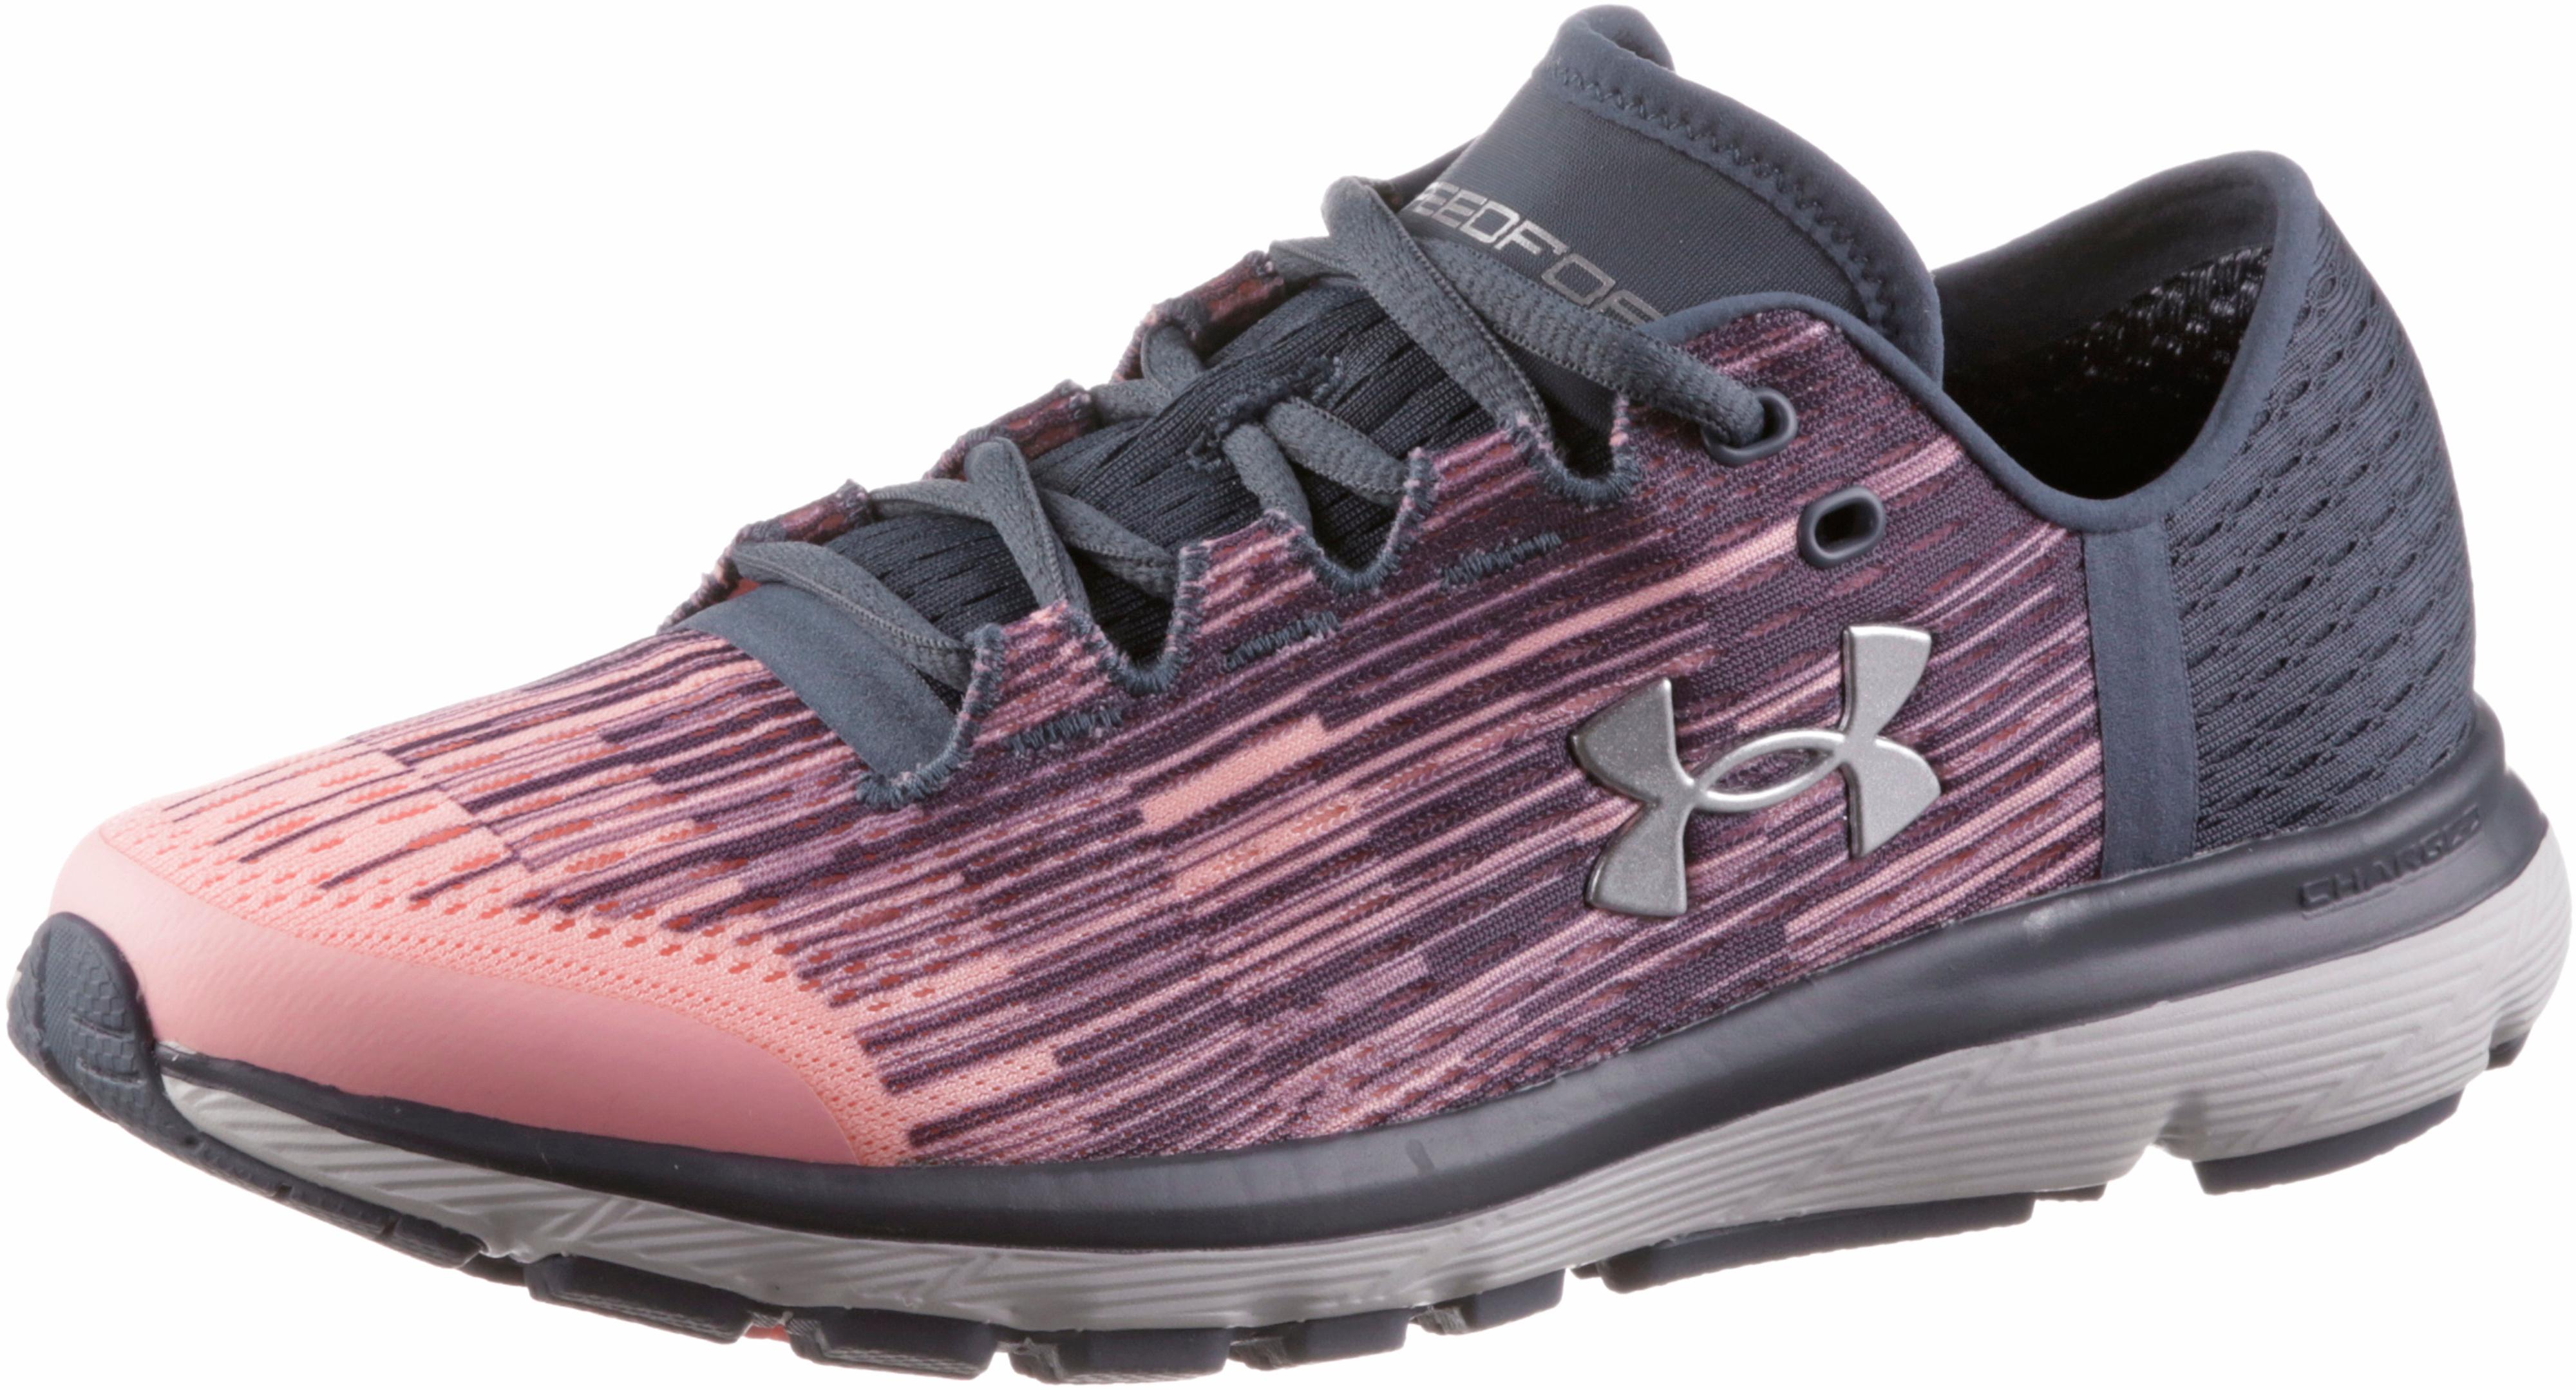 Under Armour Laufschuhe Speedform Velociti Laufschuhe Armour Damen PINK SANDS / APOLLO GRAY / METALLIC SILVER im Online Shop von SportScheck kaufen Gute Qualität beliebte Schuhe 96056b